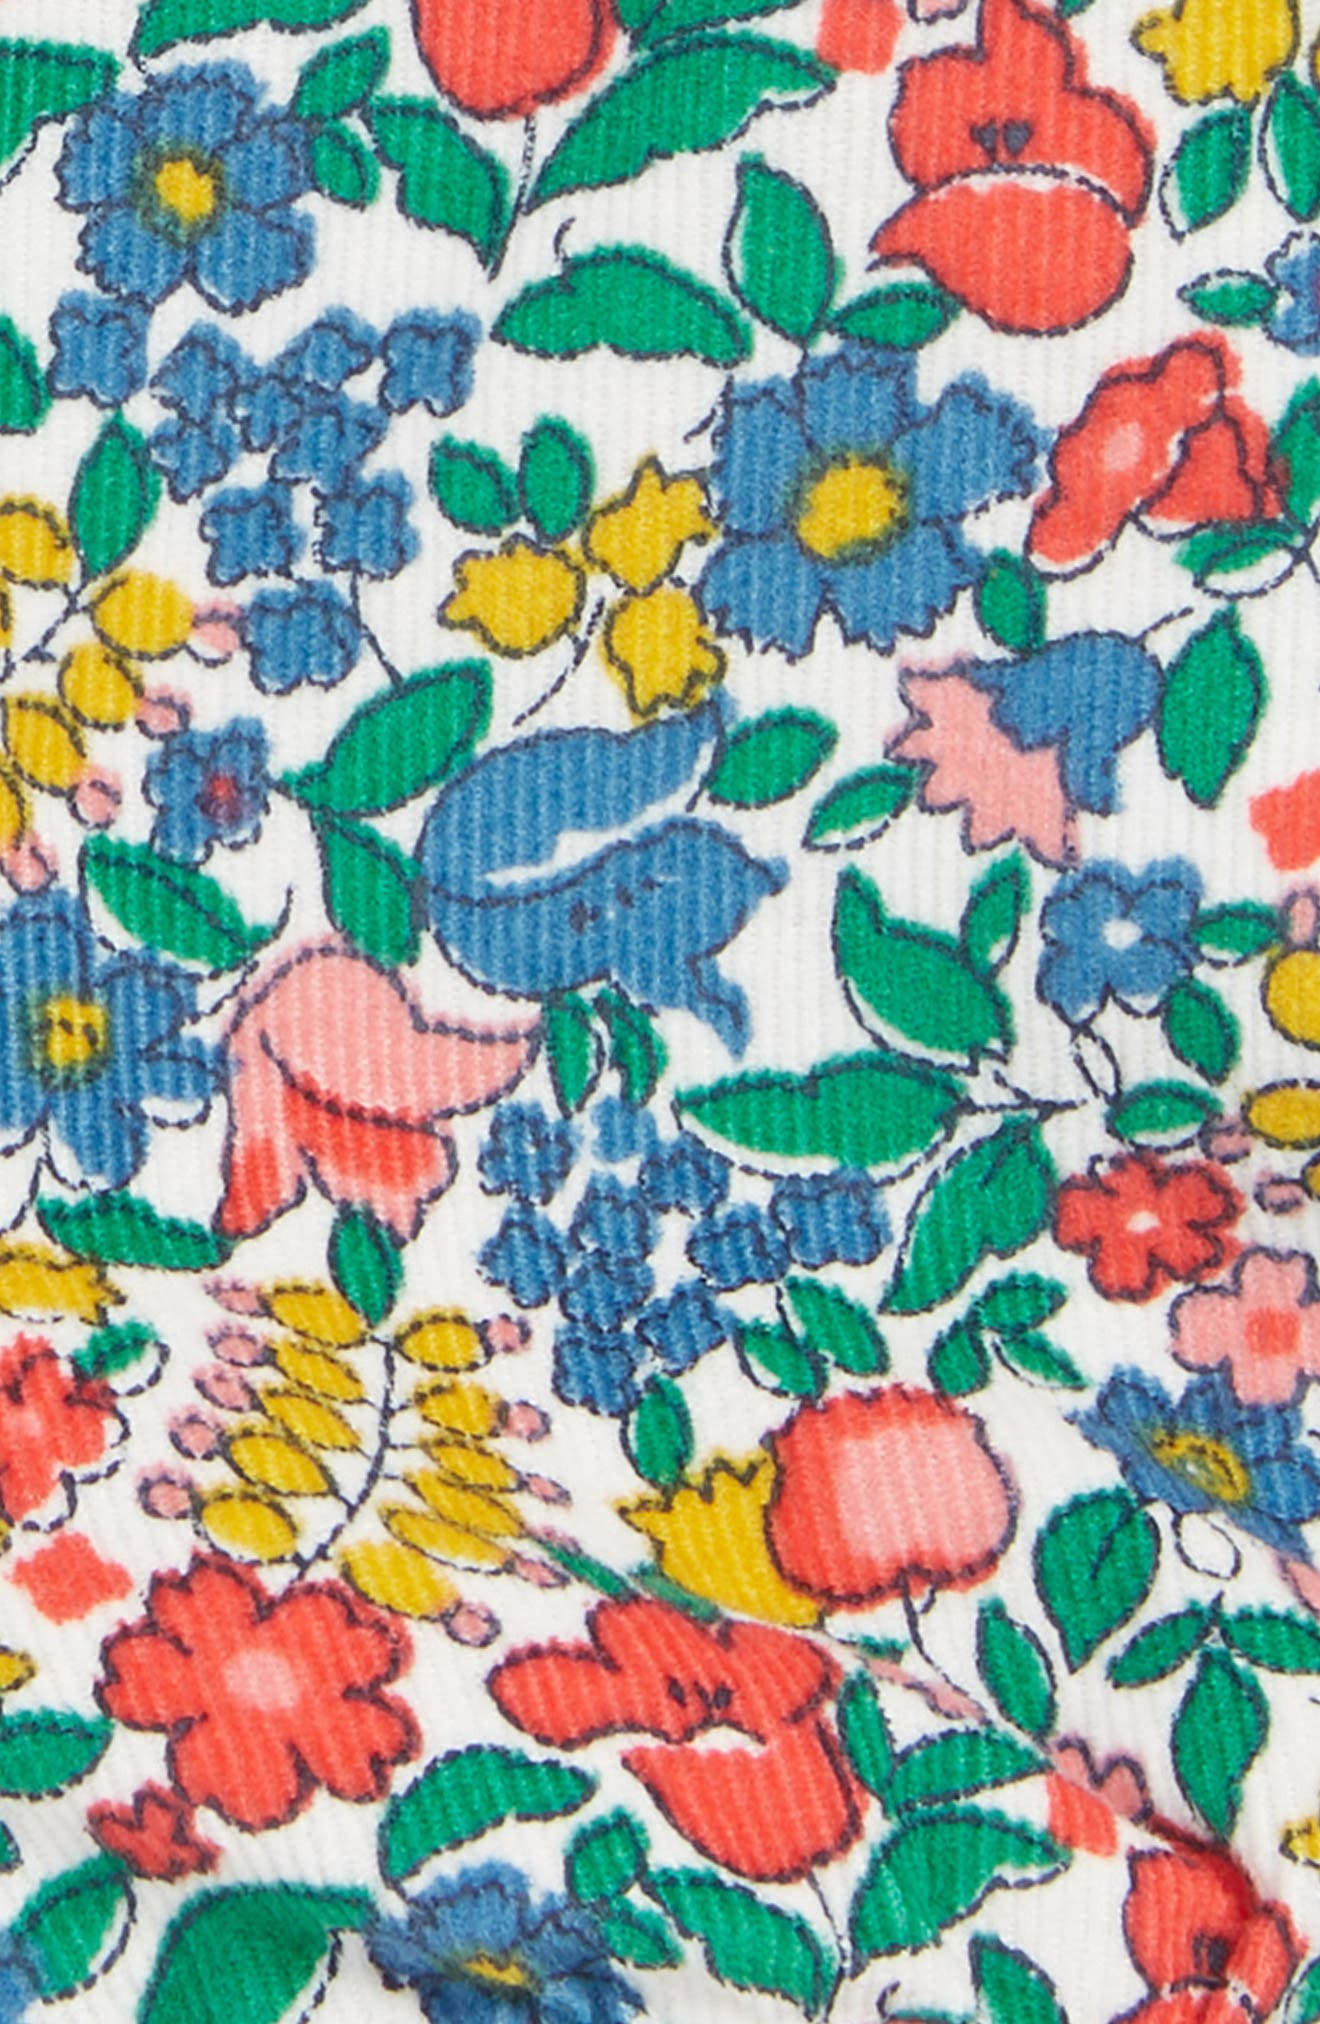 Floral Bloomer Shorts,                             Alternate thumbnail 3, color,                             FLOWERBED